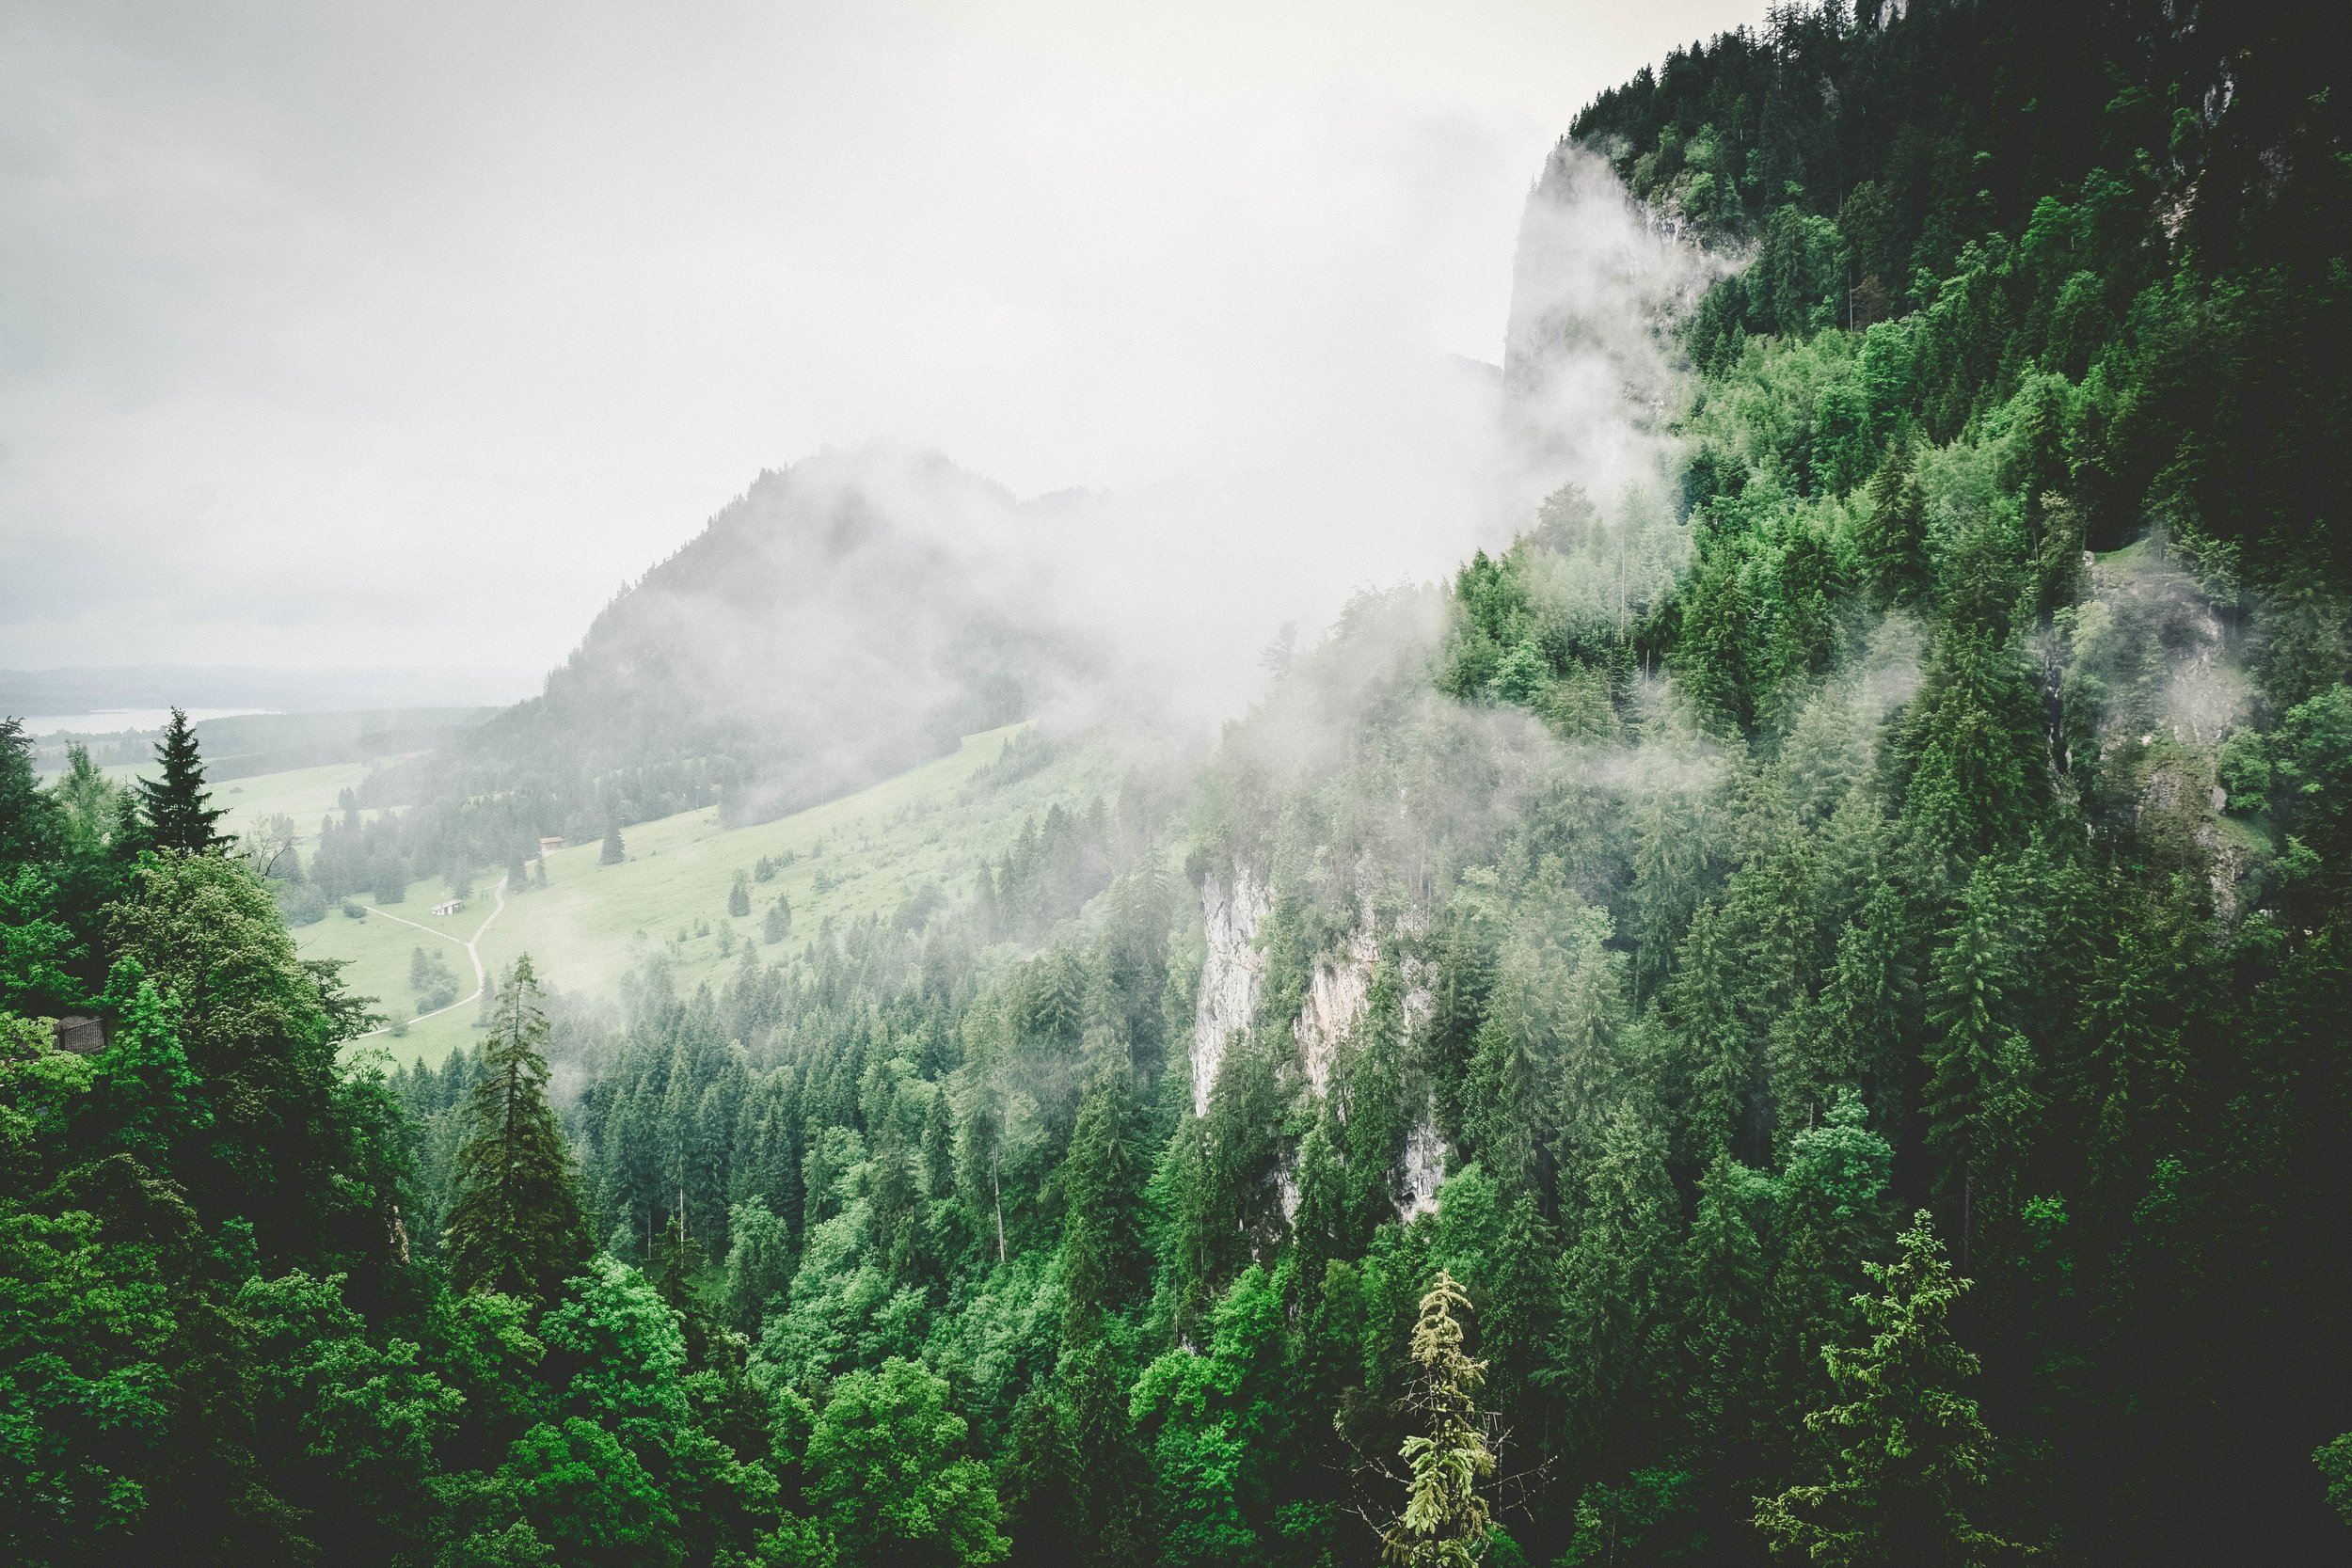 bossfight-free-stock-photos-trees-clouds-white-hills.jpg